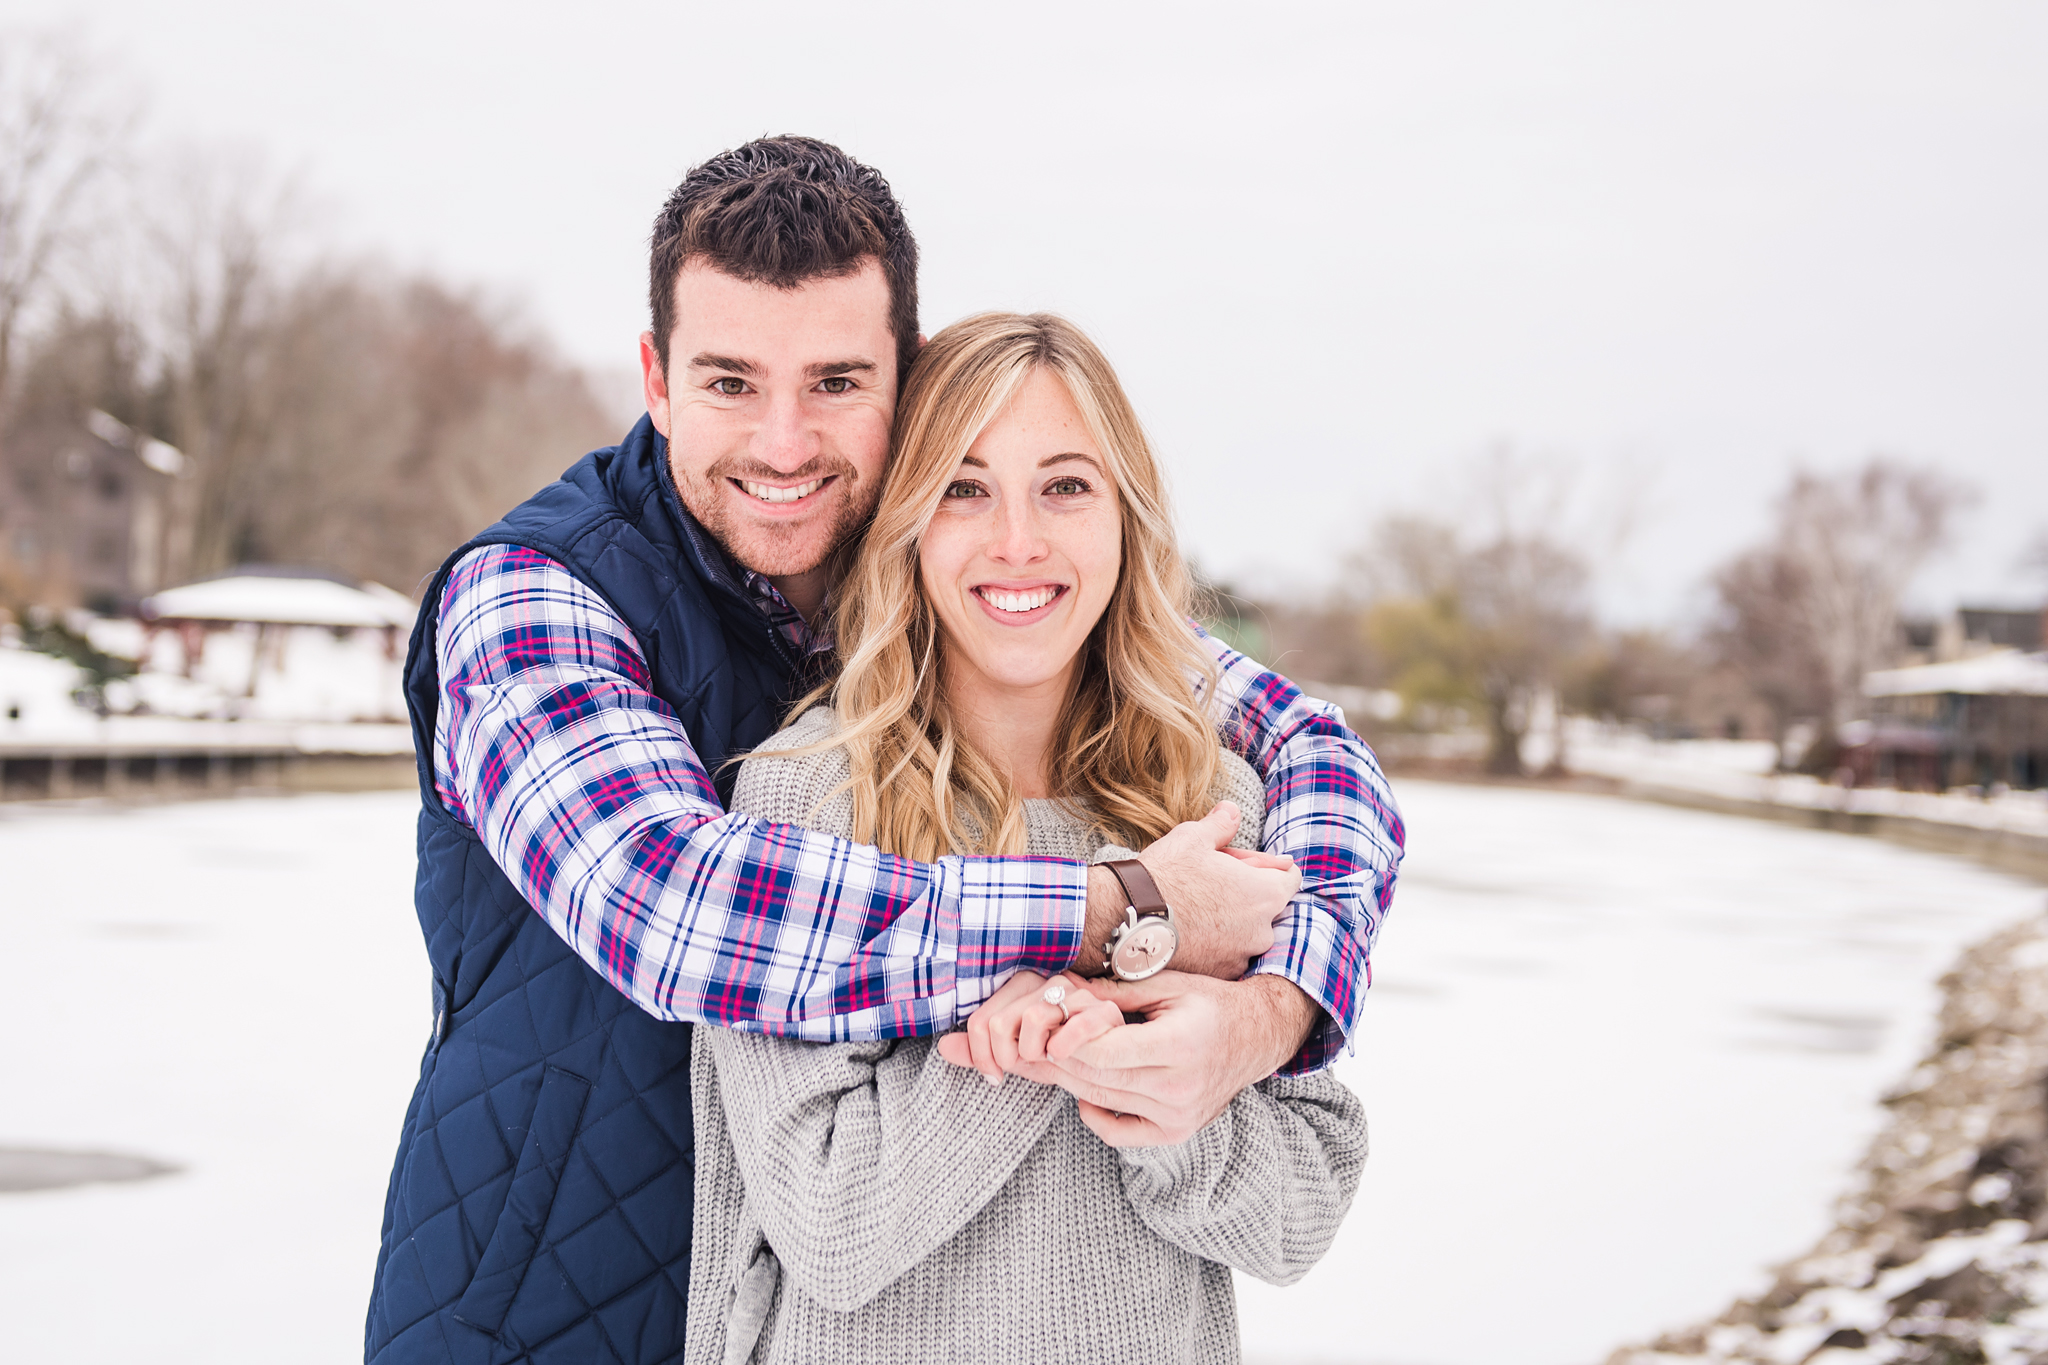 Schoen_Place_Rochester_Engagement_Session_JILL_STUDIO_Rochester_NY_Photographer_DSC_1174.jpg